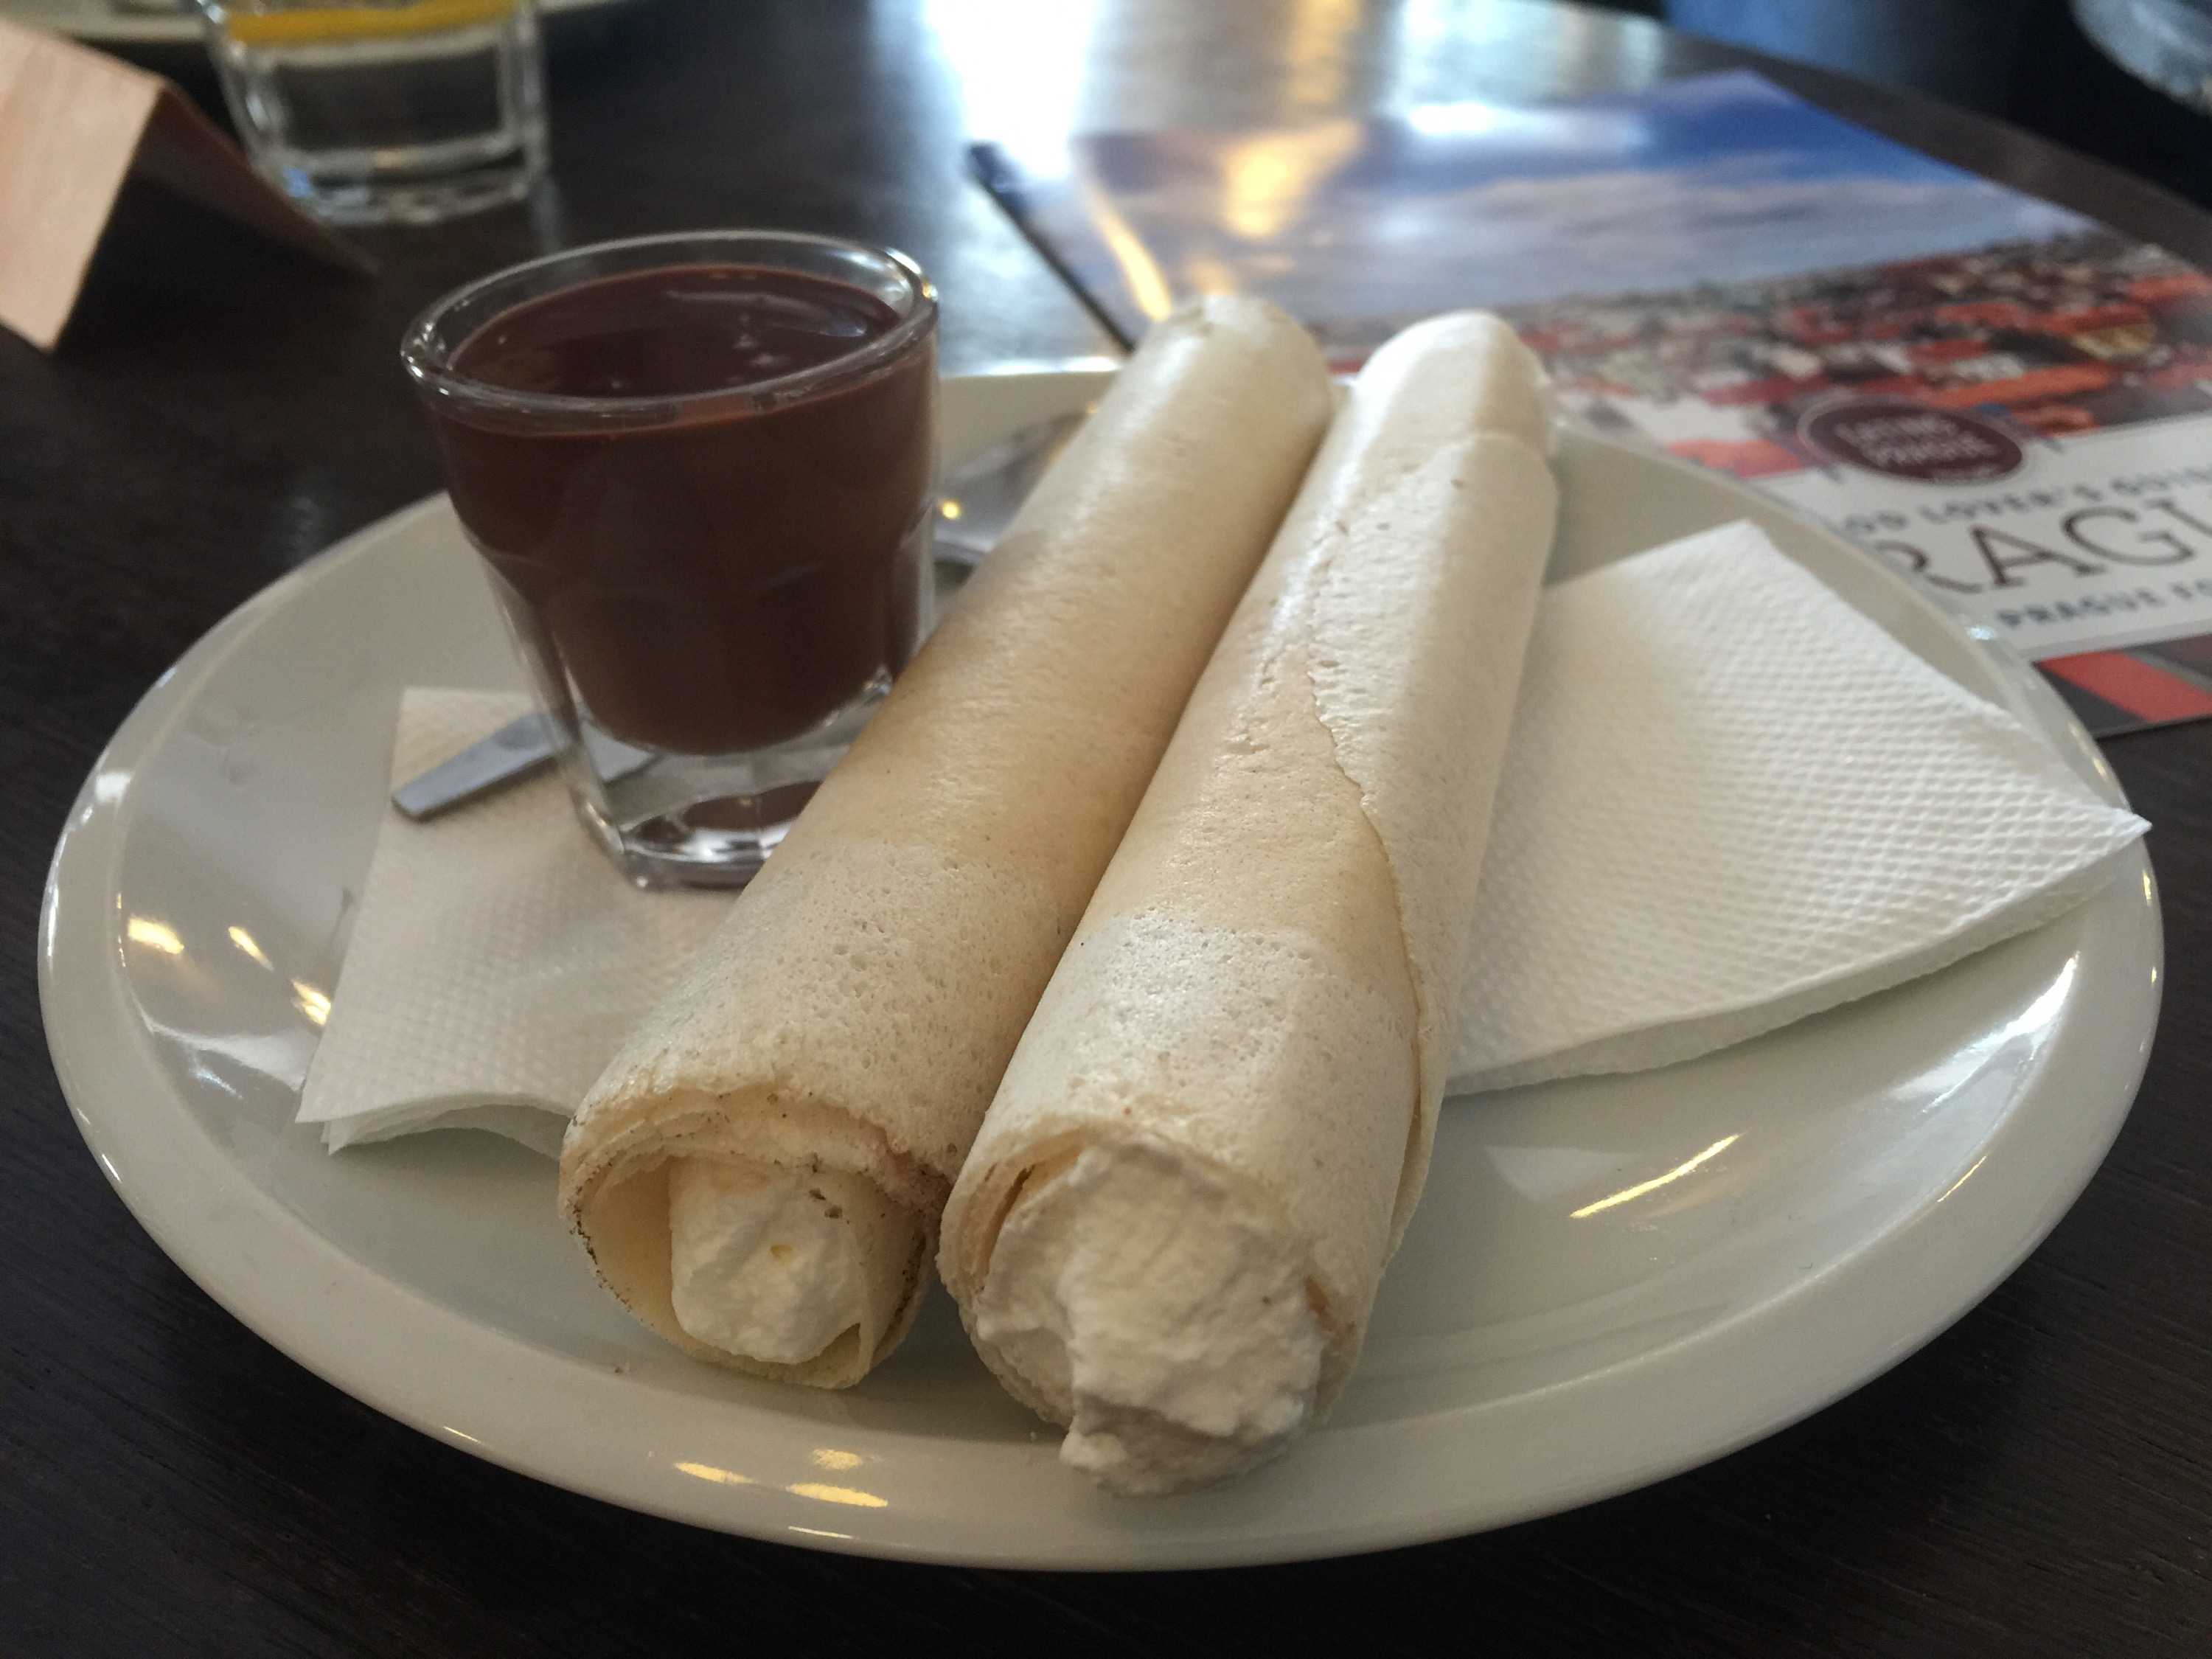 Horice rolled wafers filled with cream dipped in chocolate at Choco Cafe on PieLadyLife,com